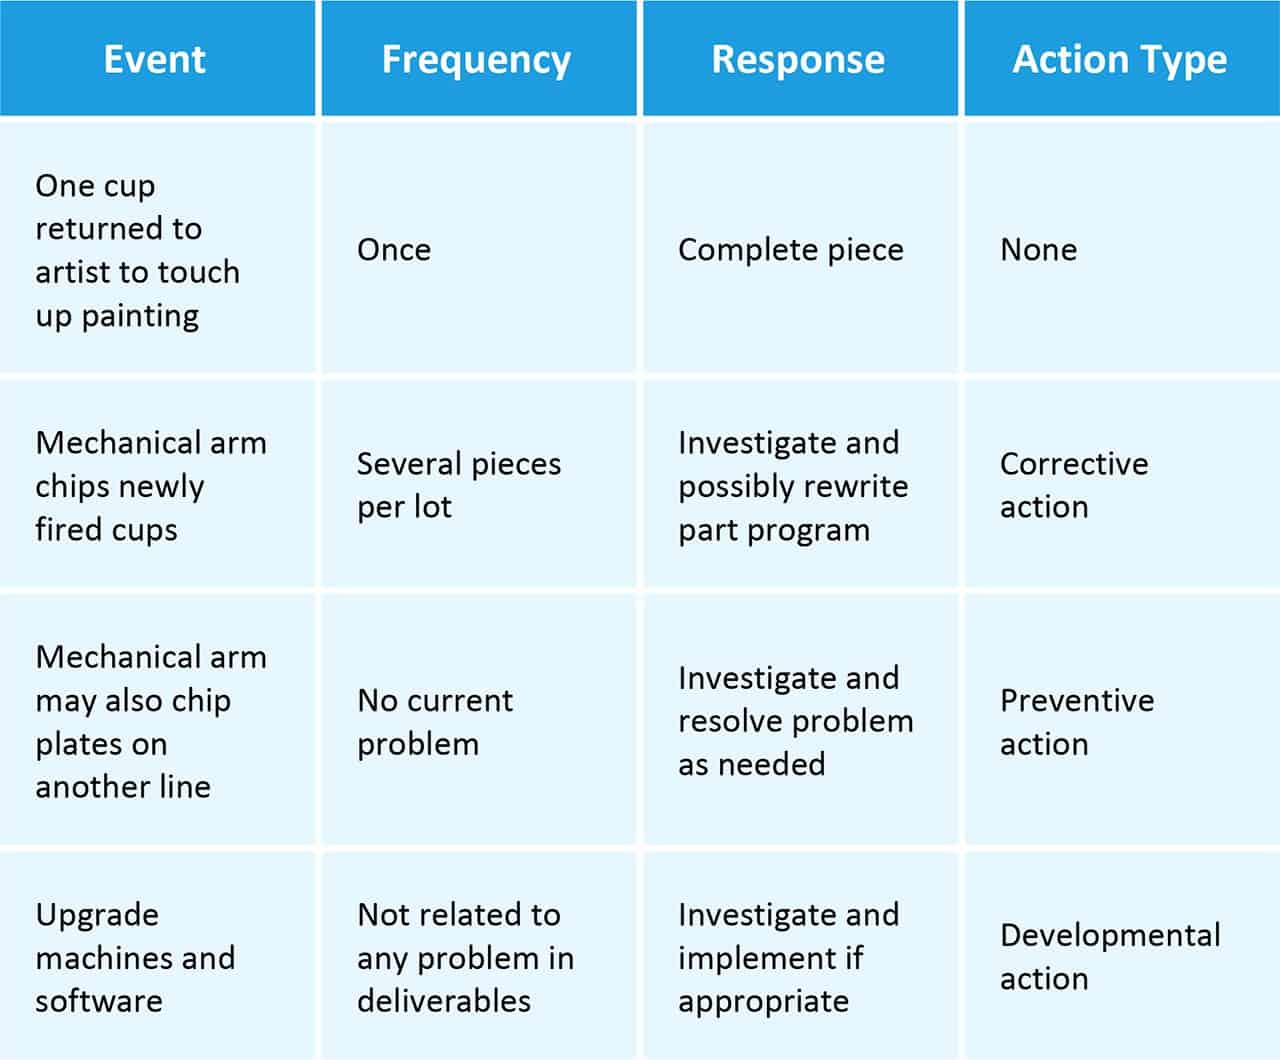 How Does Corrective Action Contrast with Preventive Action